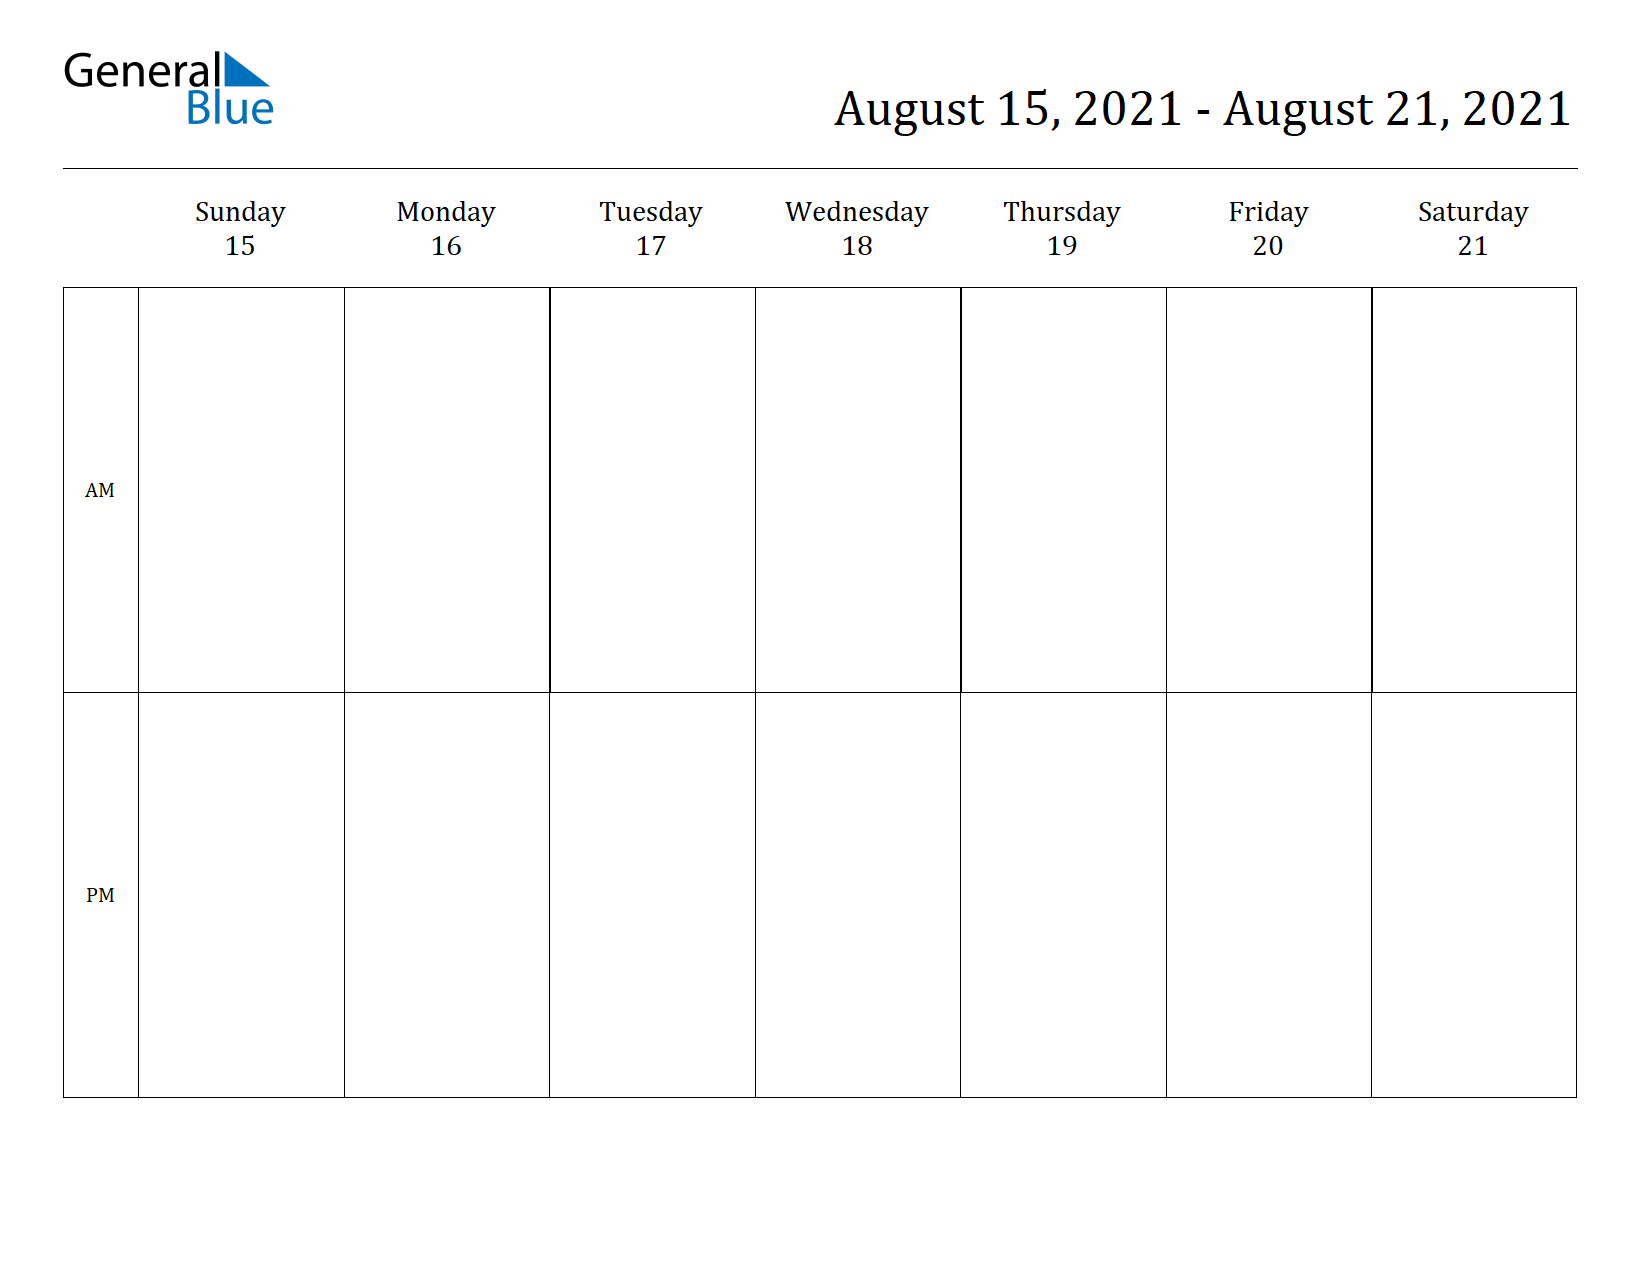 Weekly Calendar for Aug 15, 2021 to Aug 21, 2021